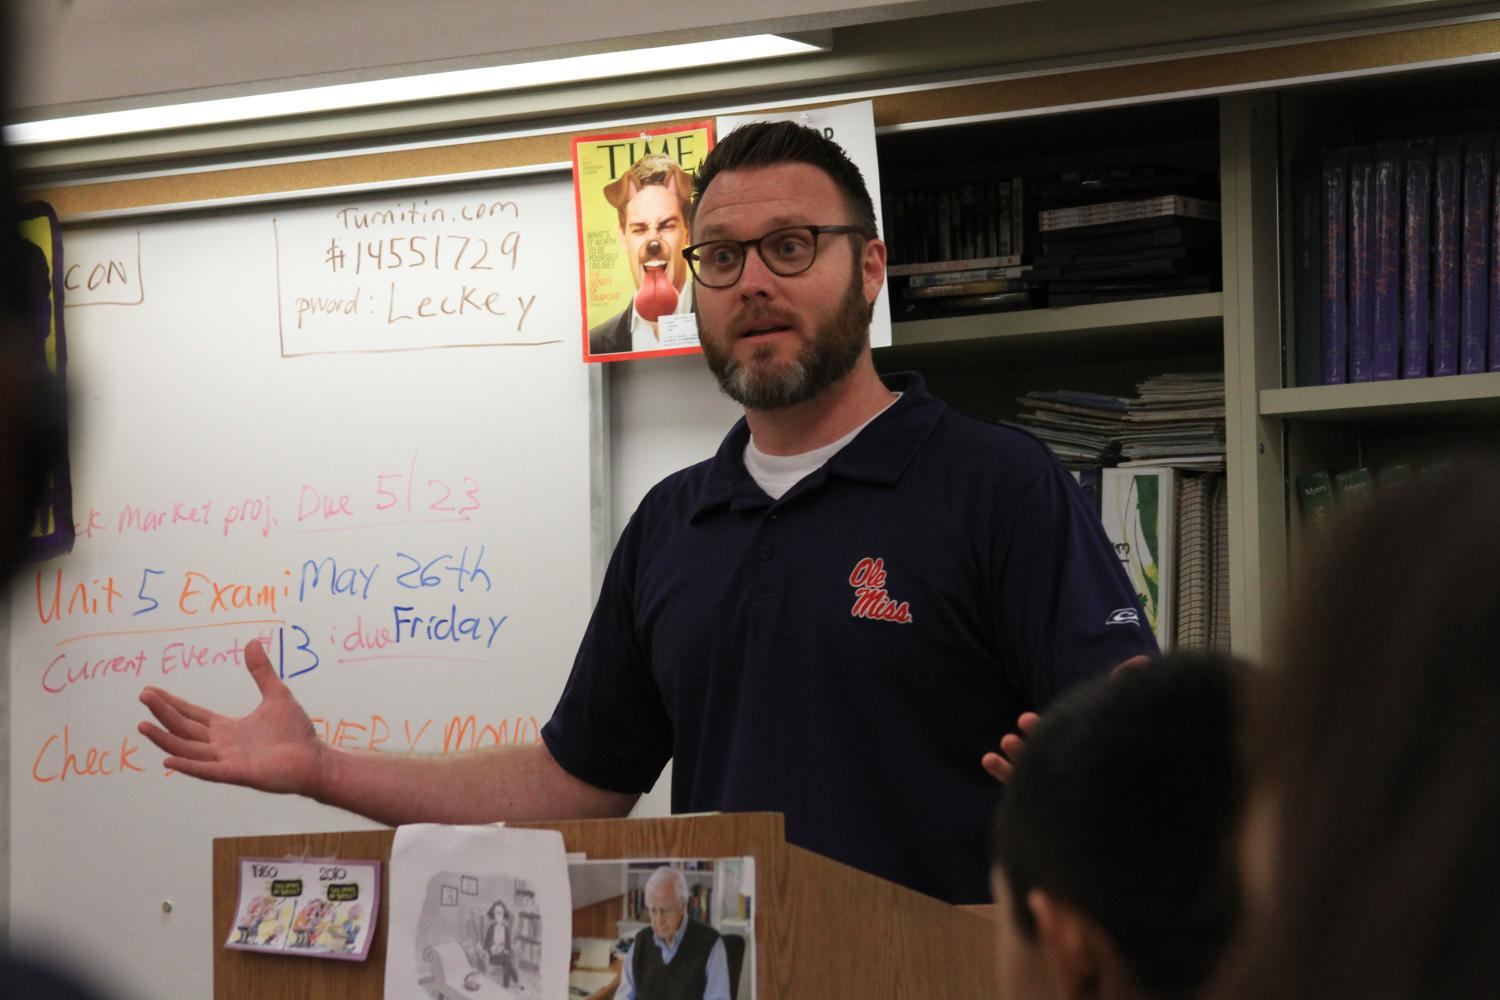 James Leckey introduced a project to the AP Psychology class.